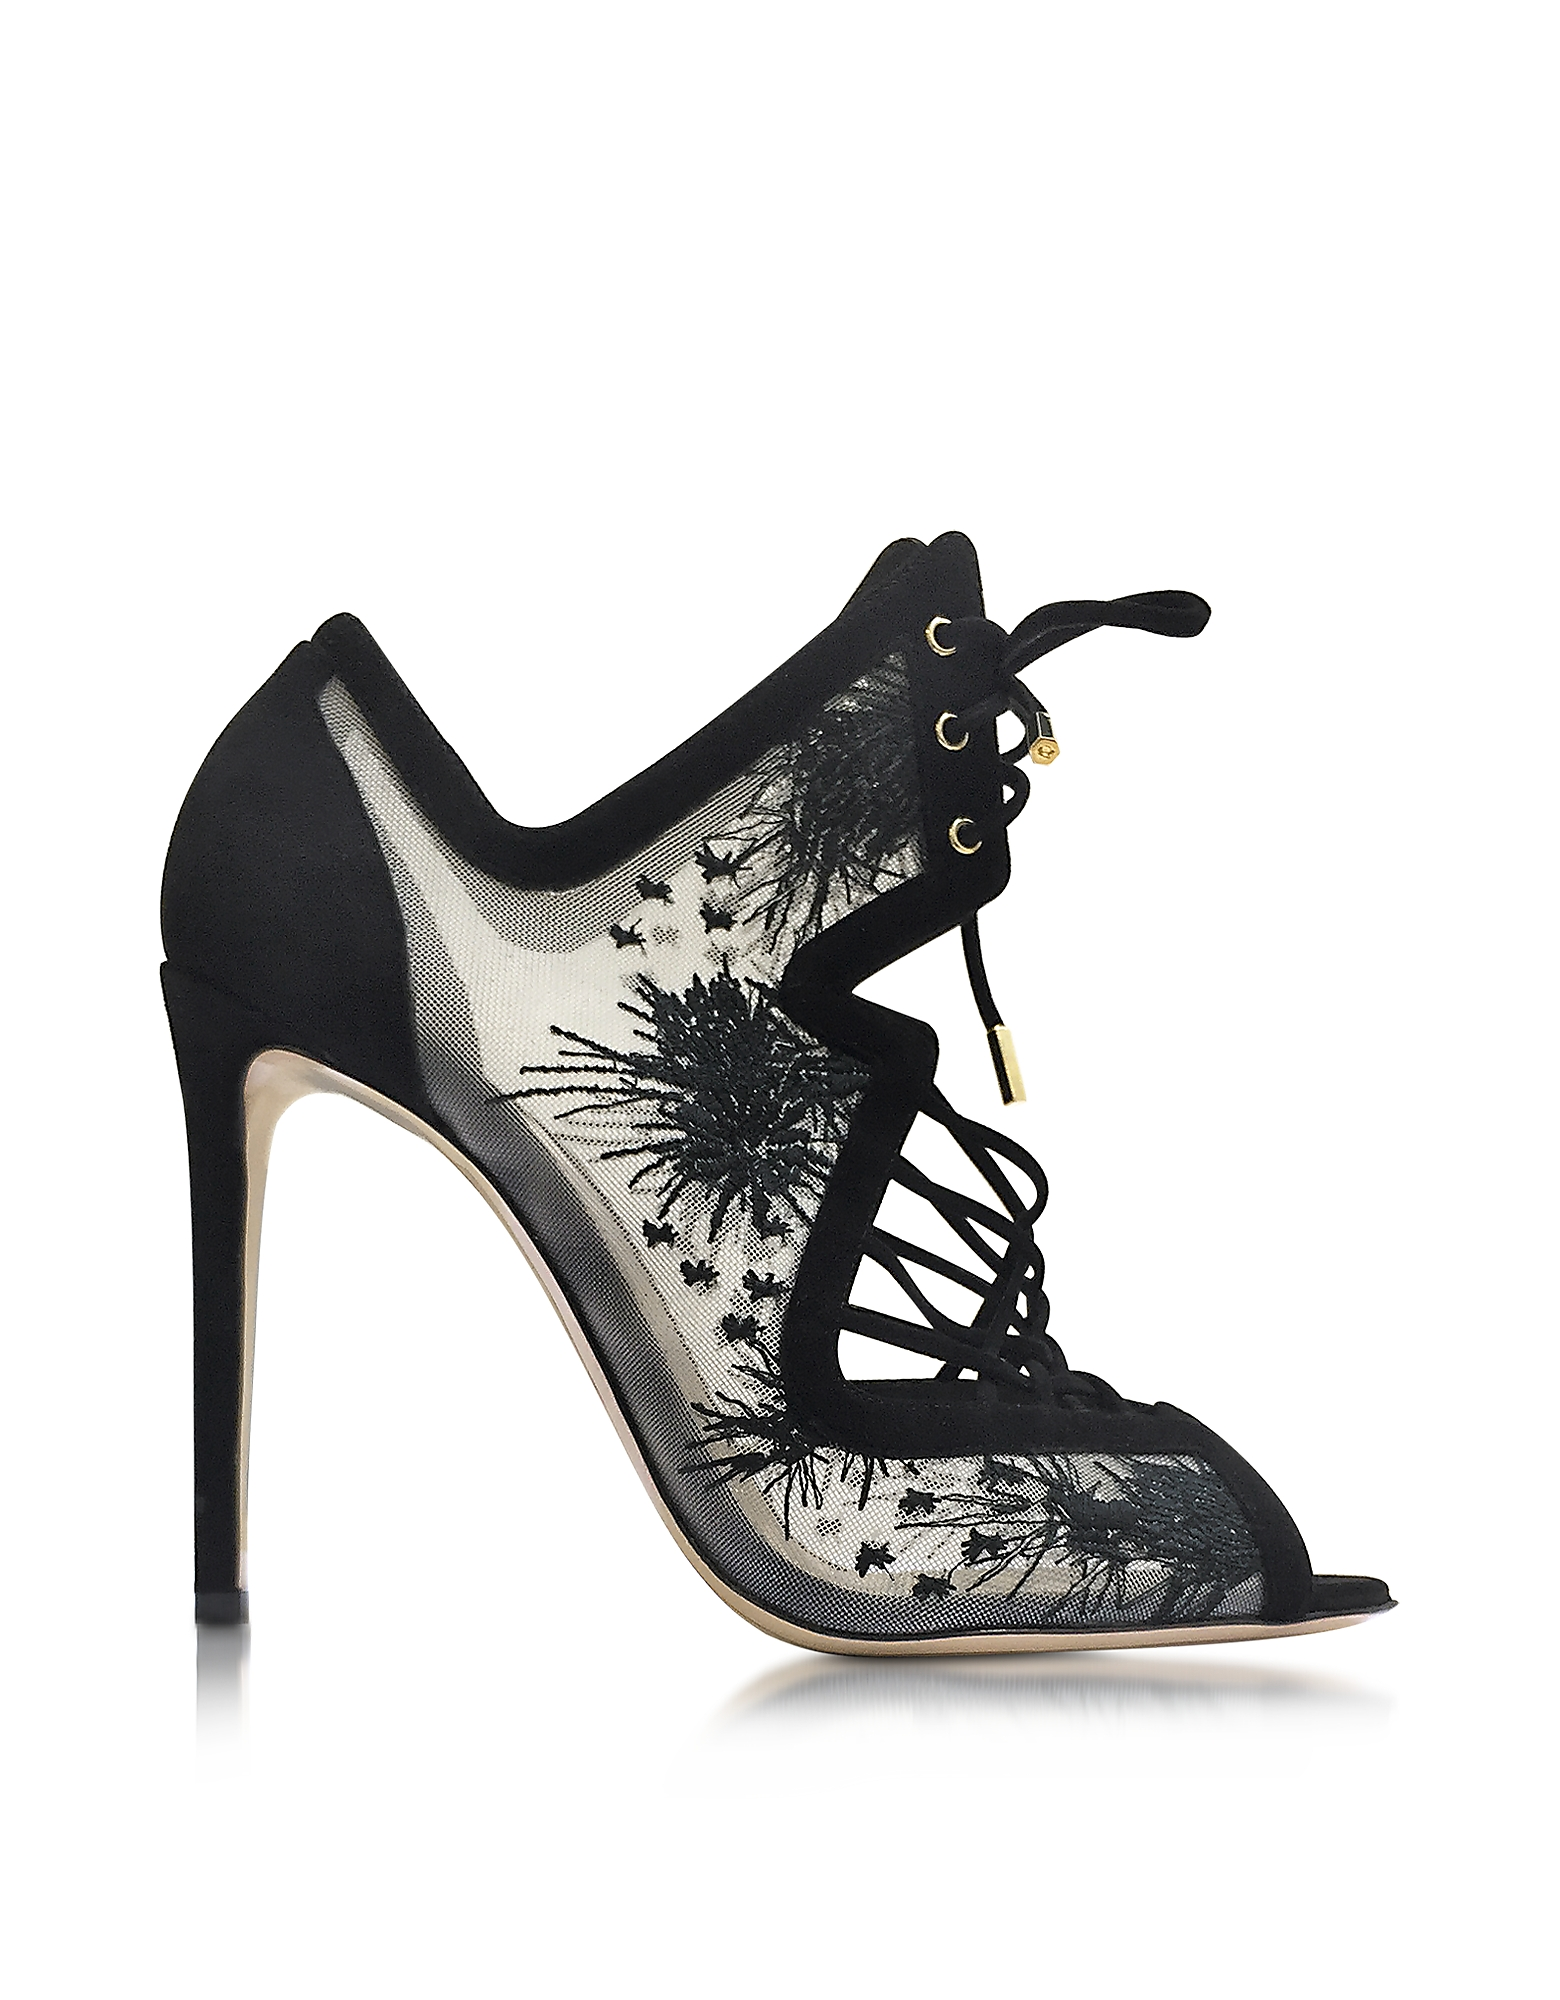 Nicholas Kirkwood Shoes, Phoenix Black Embroidered Sandal